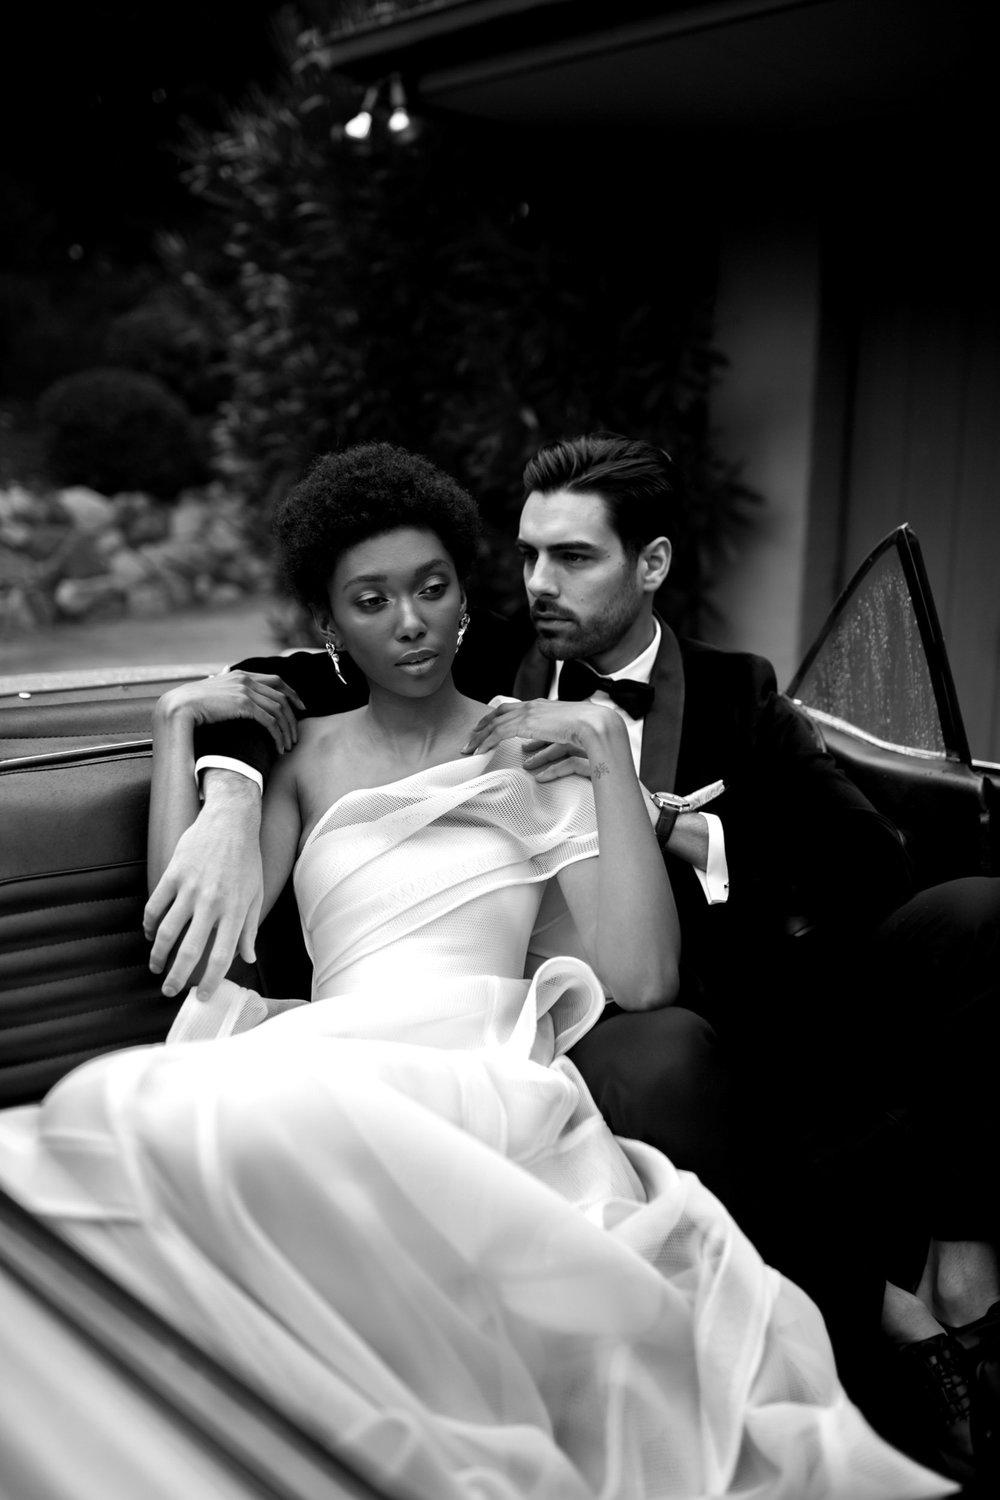 White Vine Photography - Melbourne Wedding Photographer - Destination Blacktie Fashion Editorial (18 of 54).jpg